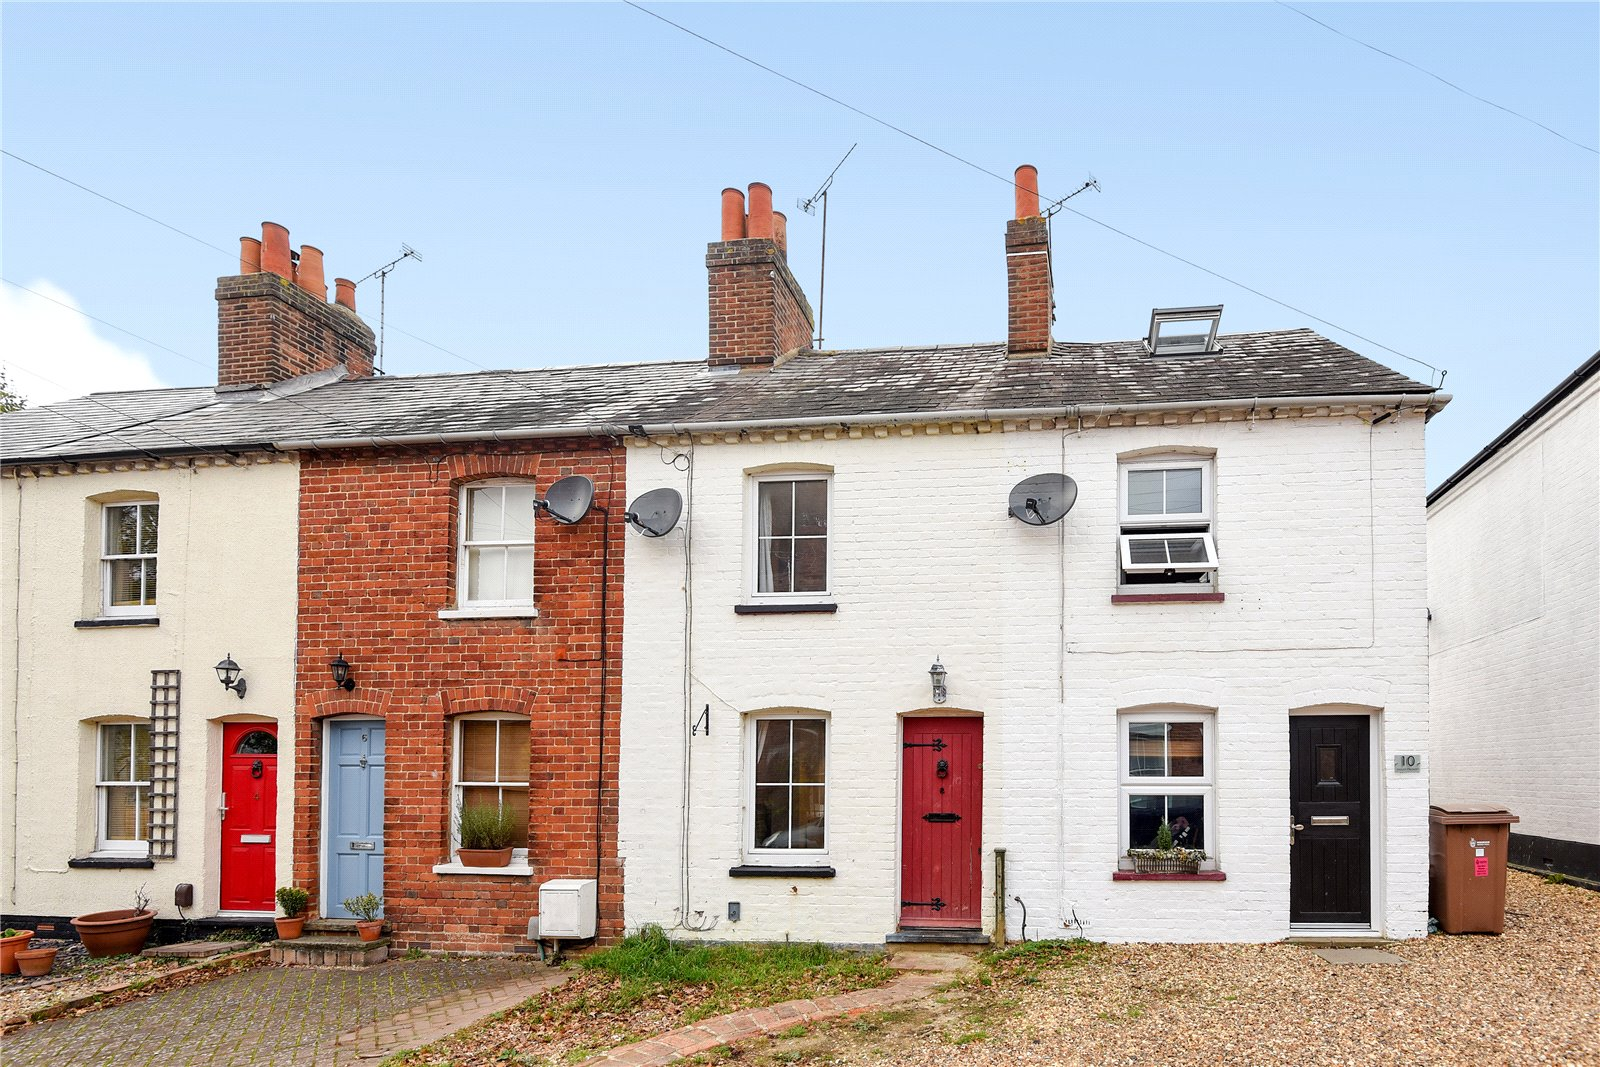 2 Bedrooms Terraced House for sale in Mount Pleasant, Wokingham, Berkshire, RG41